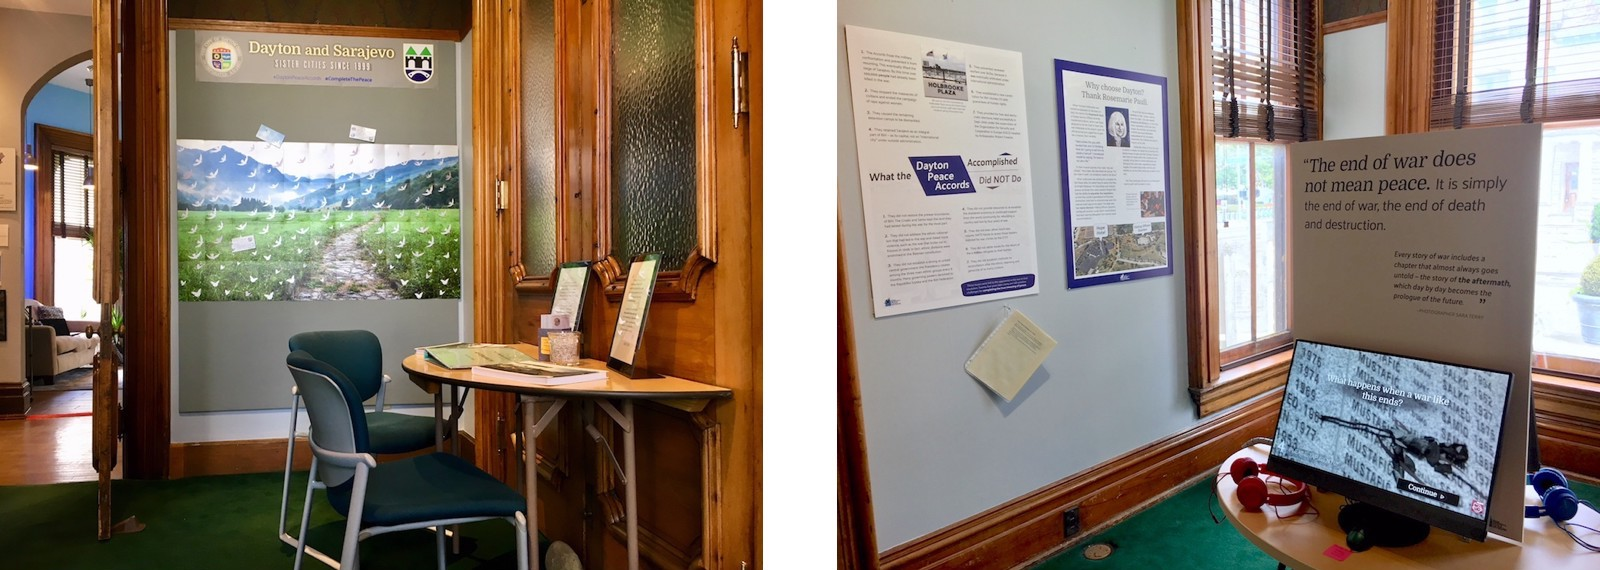 two photographs of the tables, wall panels and kiosk in the Dayton Peace Exhibit